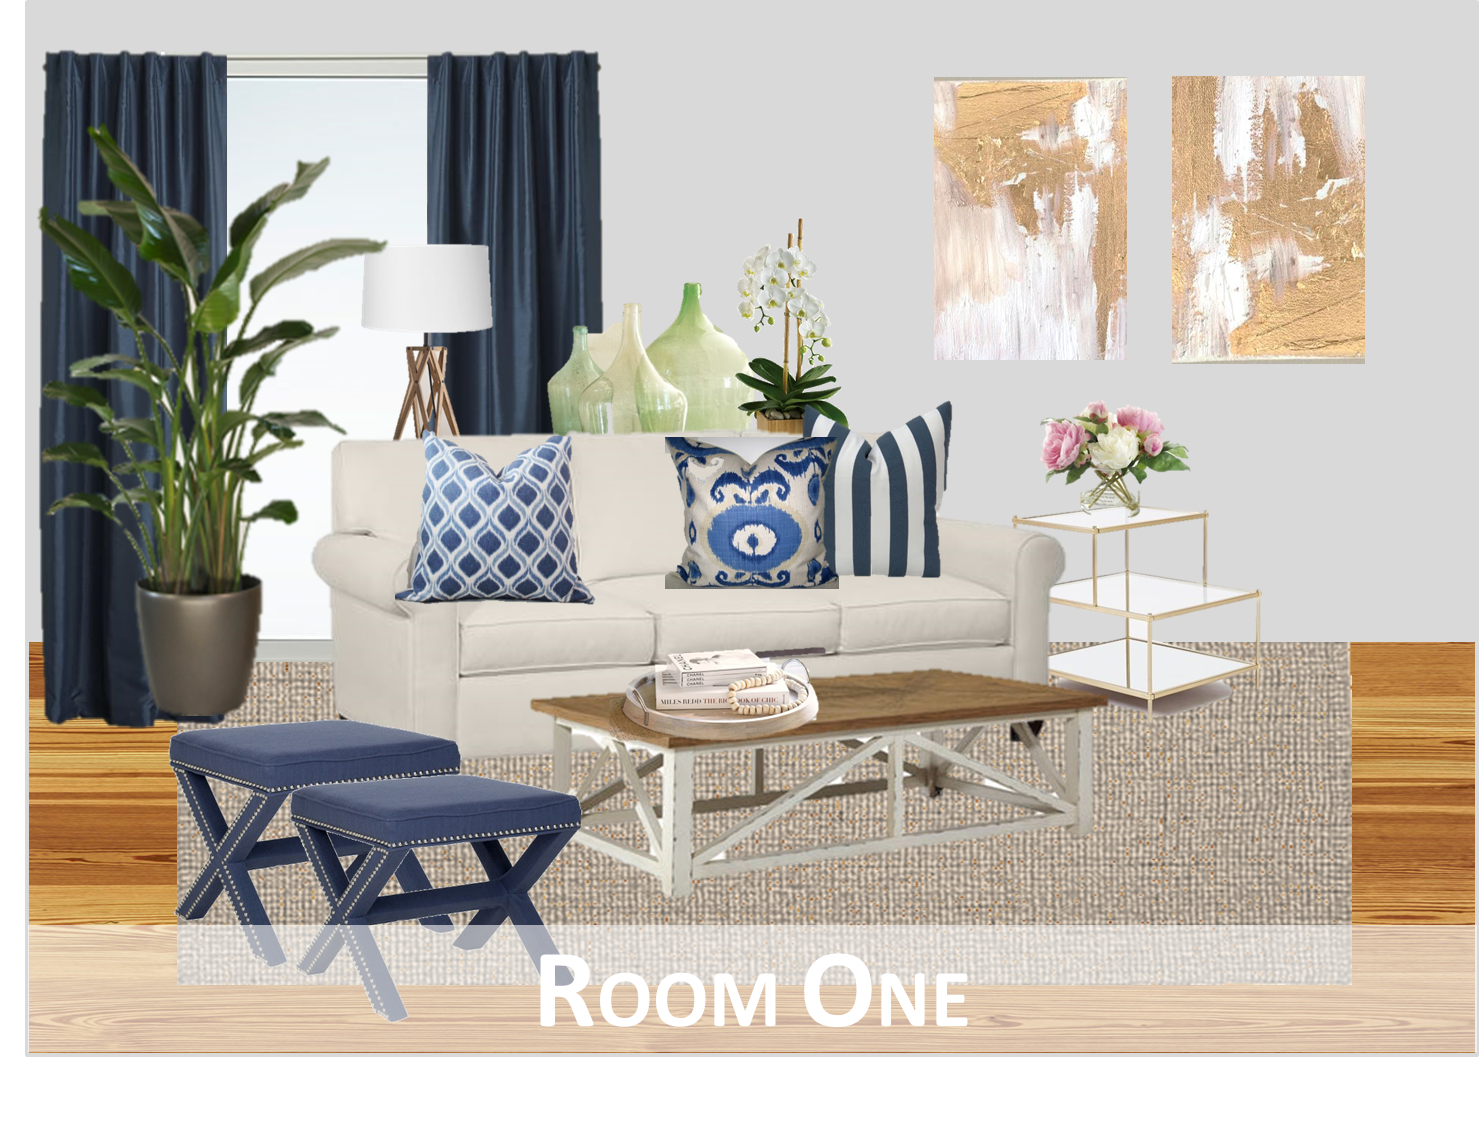 Room One: Here, We Brought In Color Through The Navy Curtains, Navy Stools,  And Patterned Blue And White Throw Pillows. The Rest Of The Room Is Very  Neutral ...